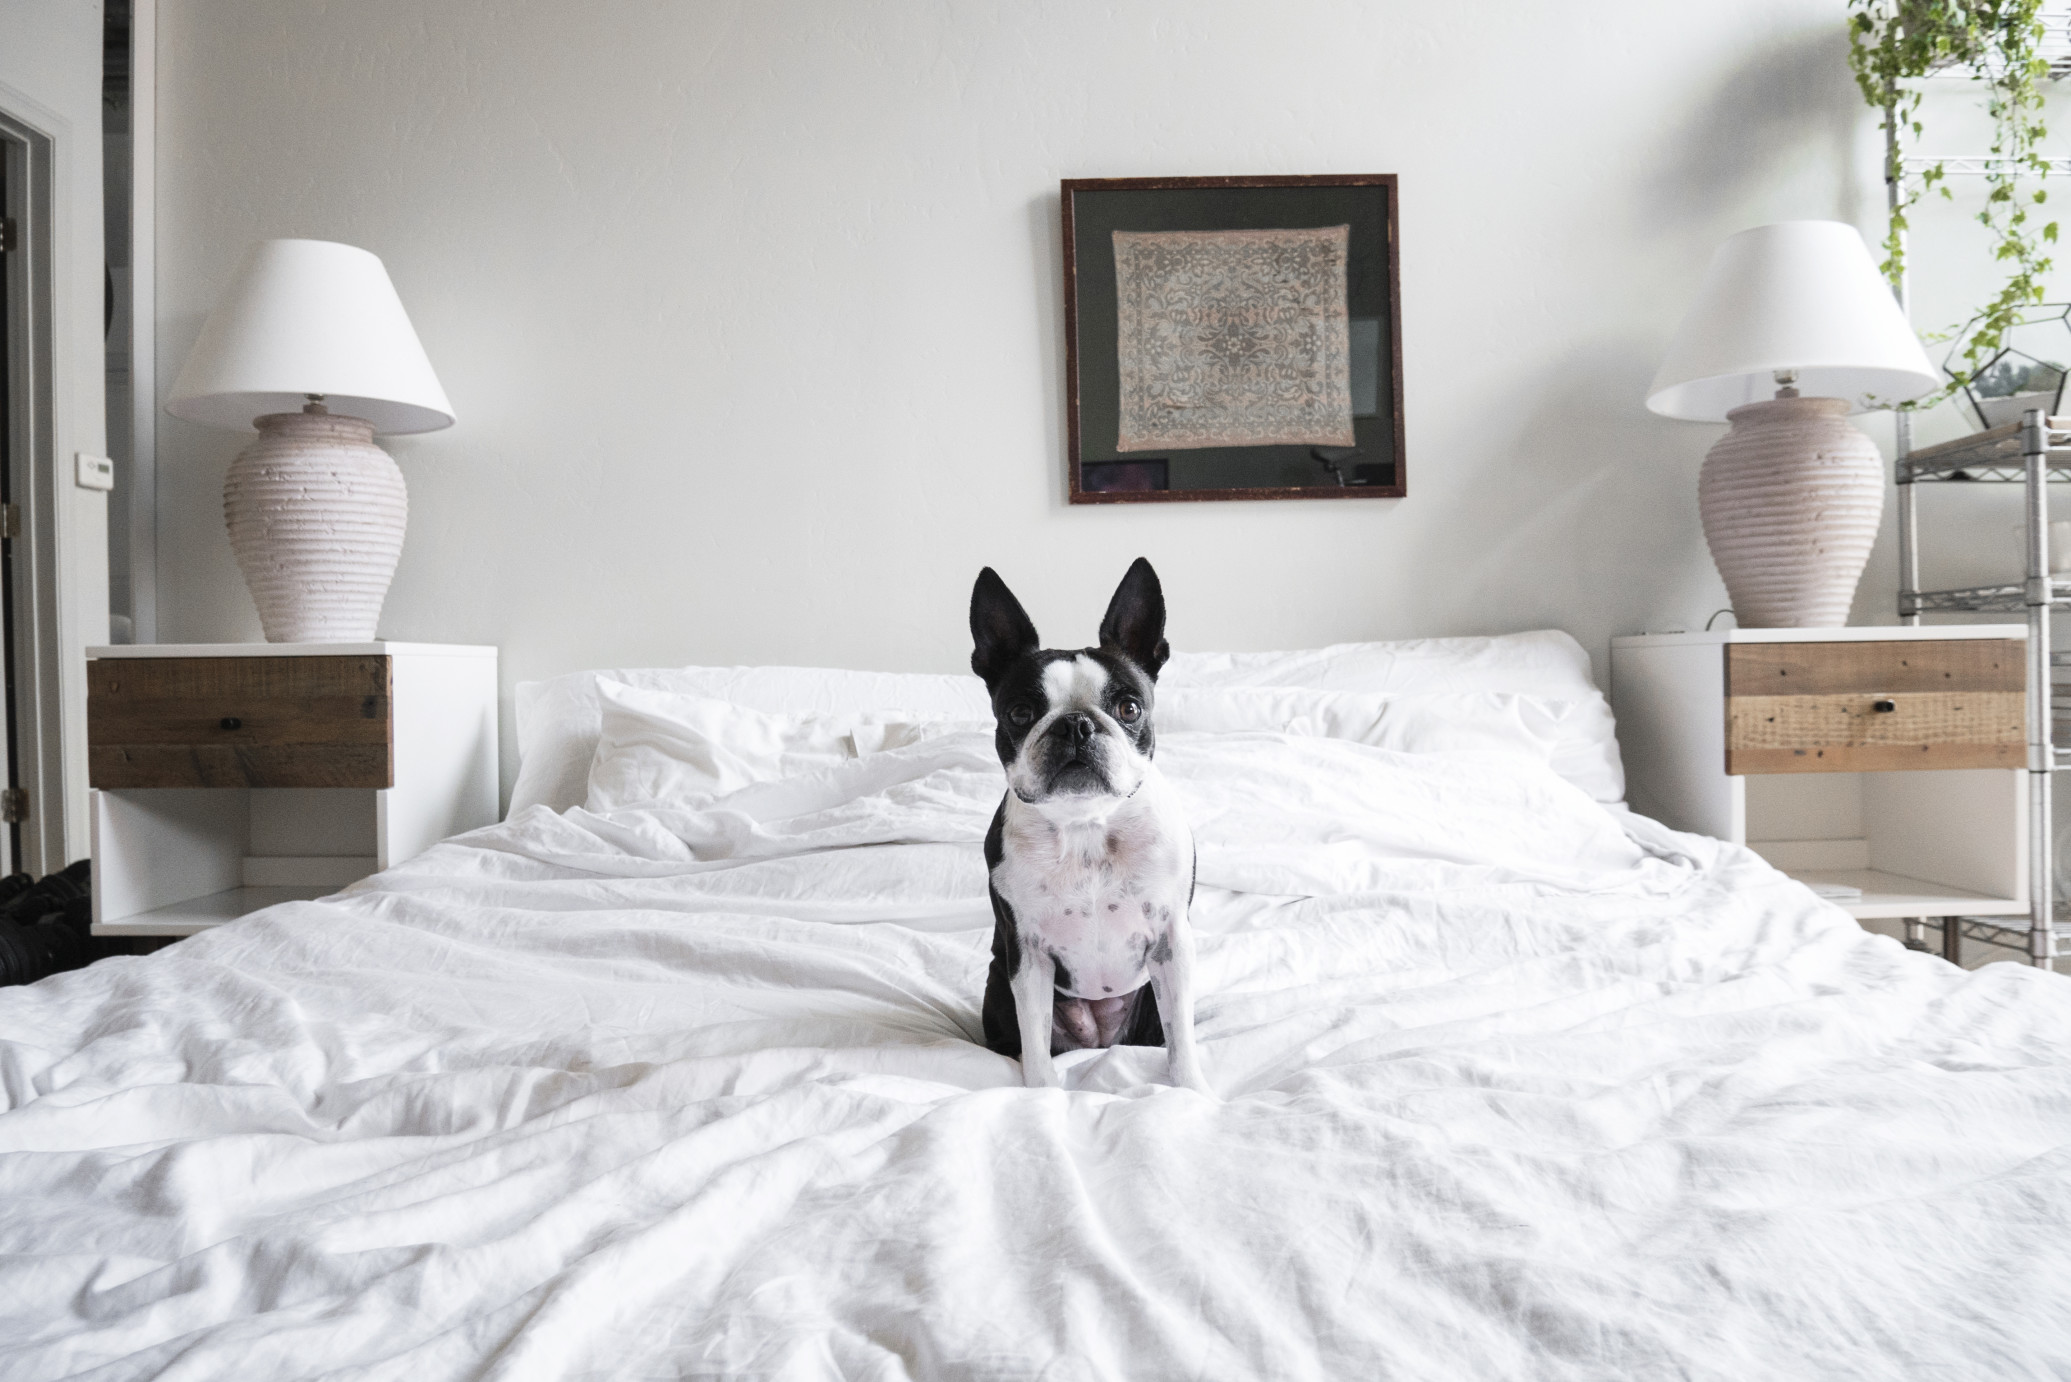 cute dog sitting on bed t aBeVP